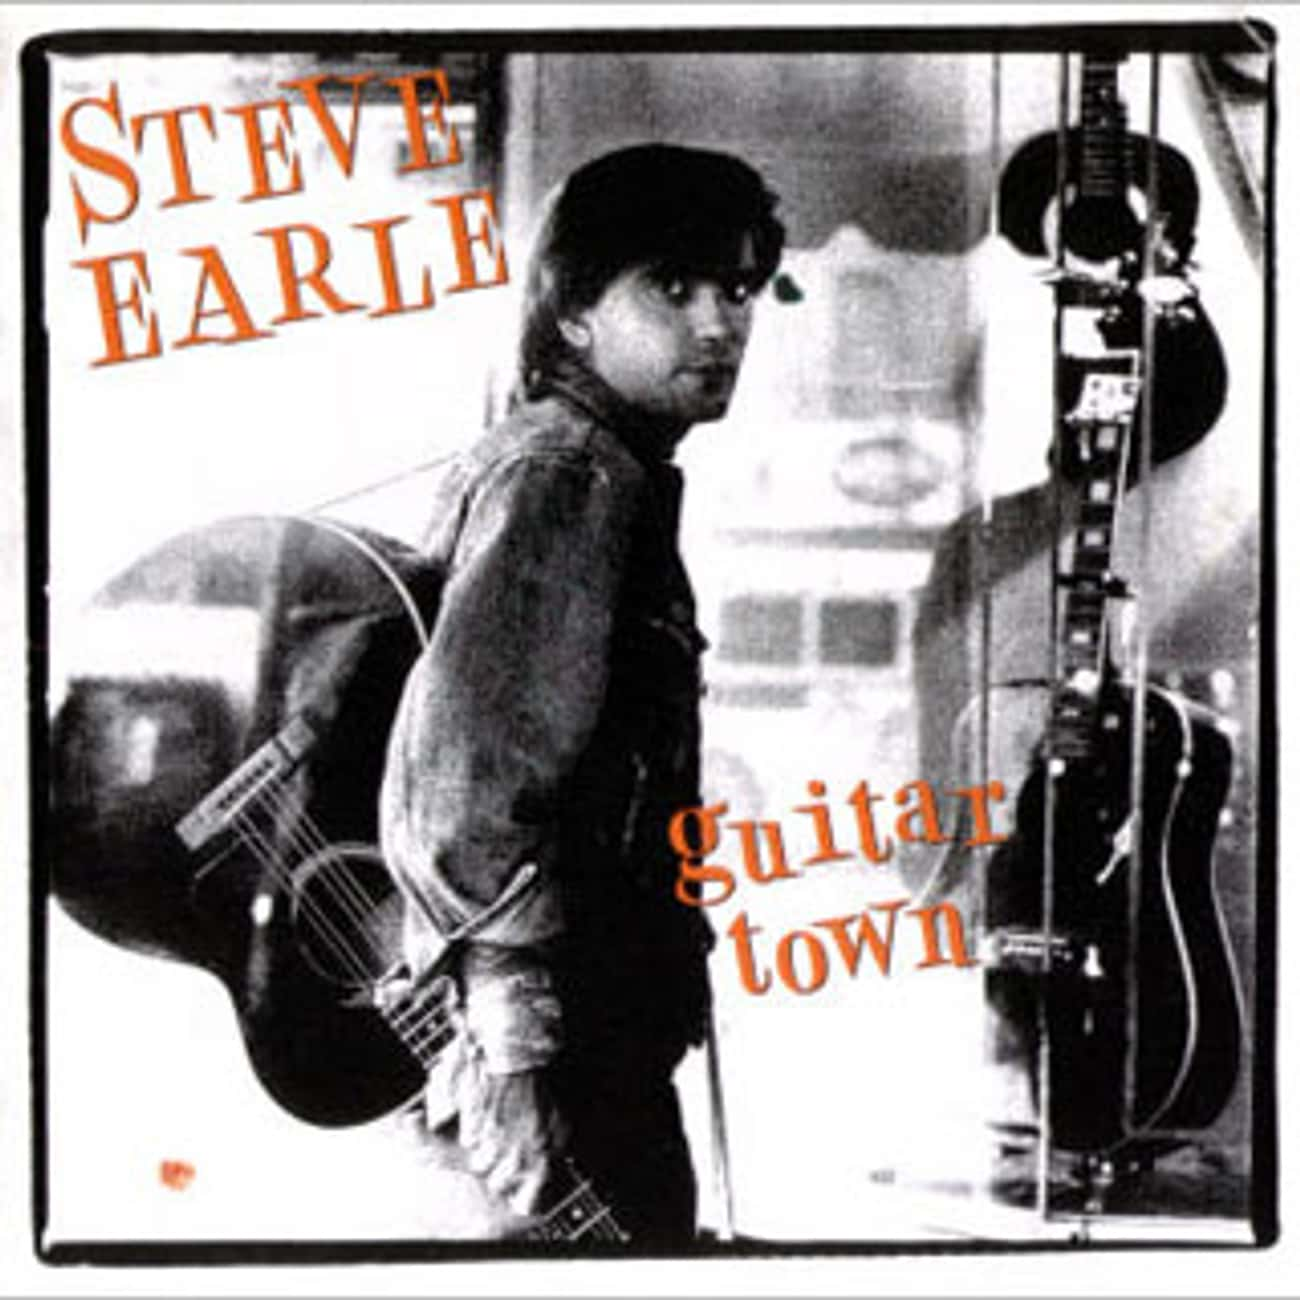 Guitar Town is listed (or ranked) 3 on the list The Best Steve Earle Albums of All Time